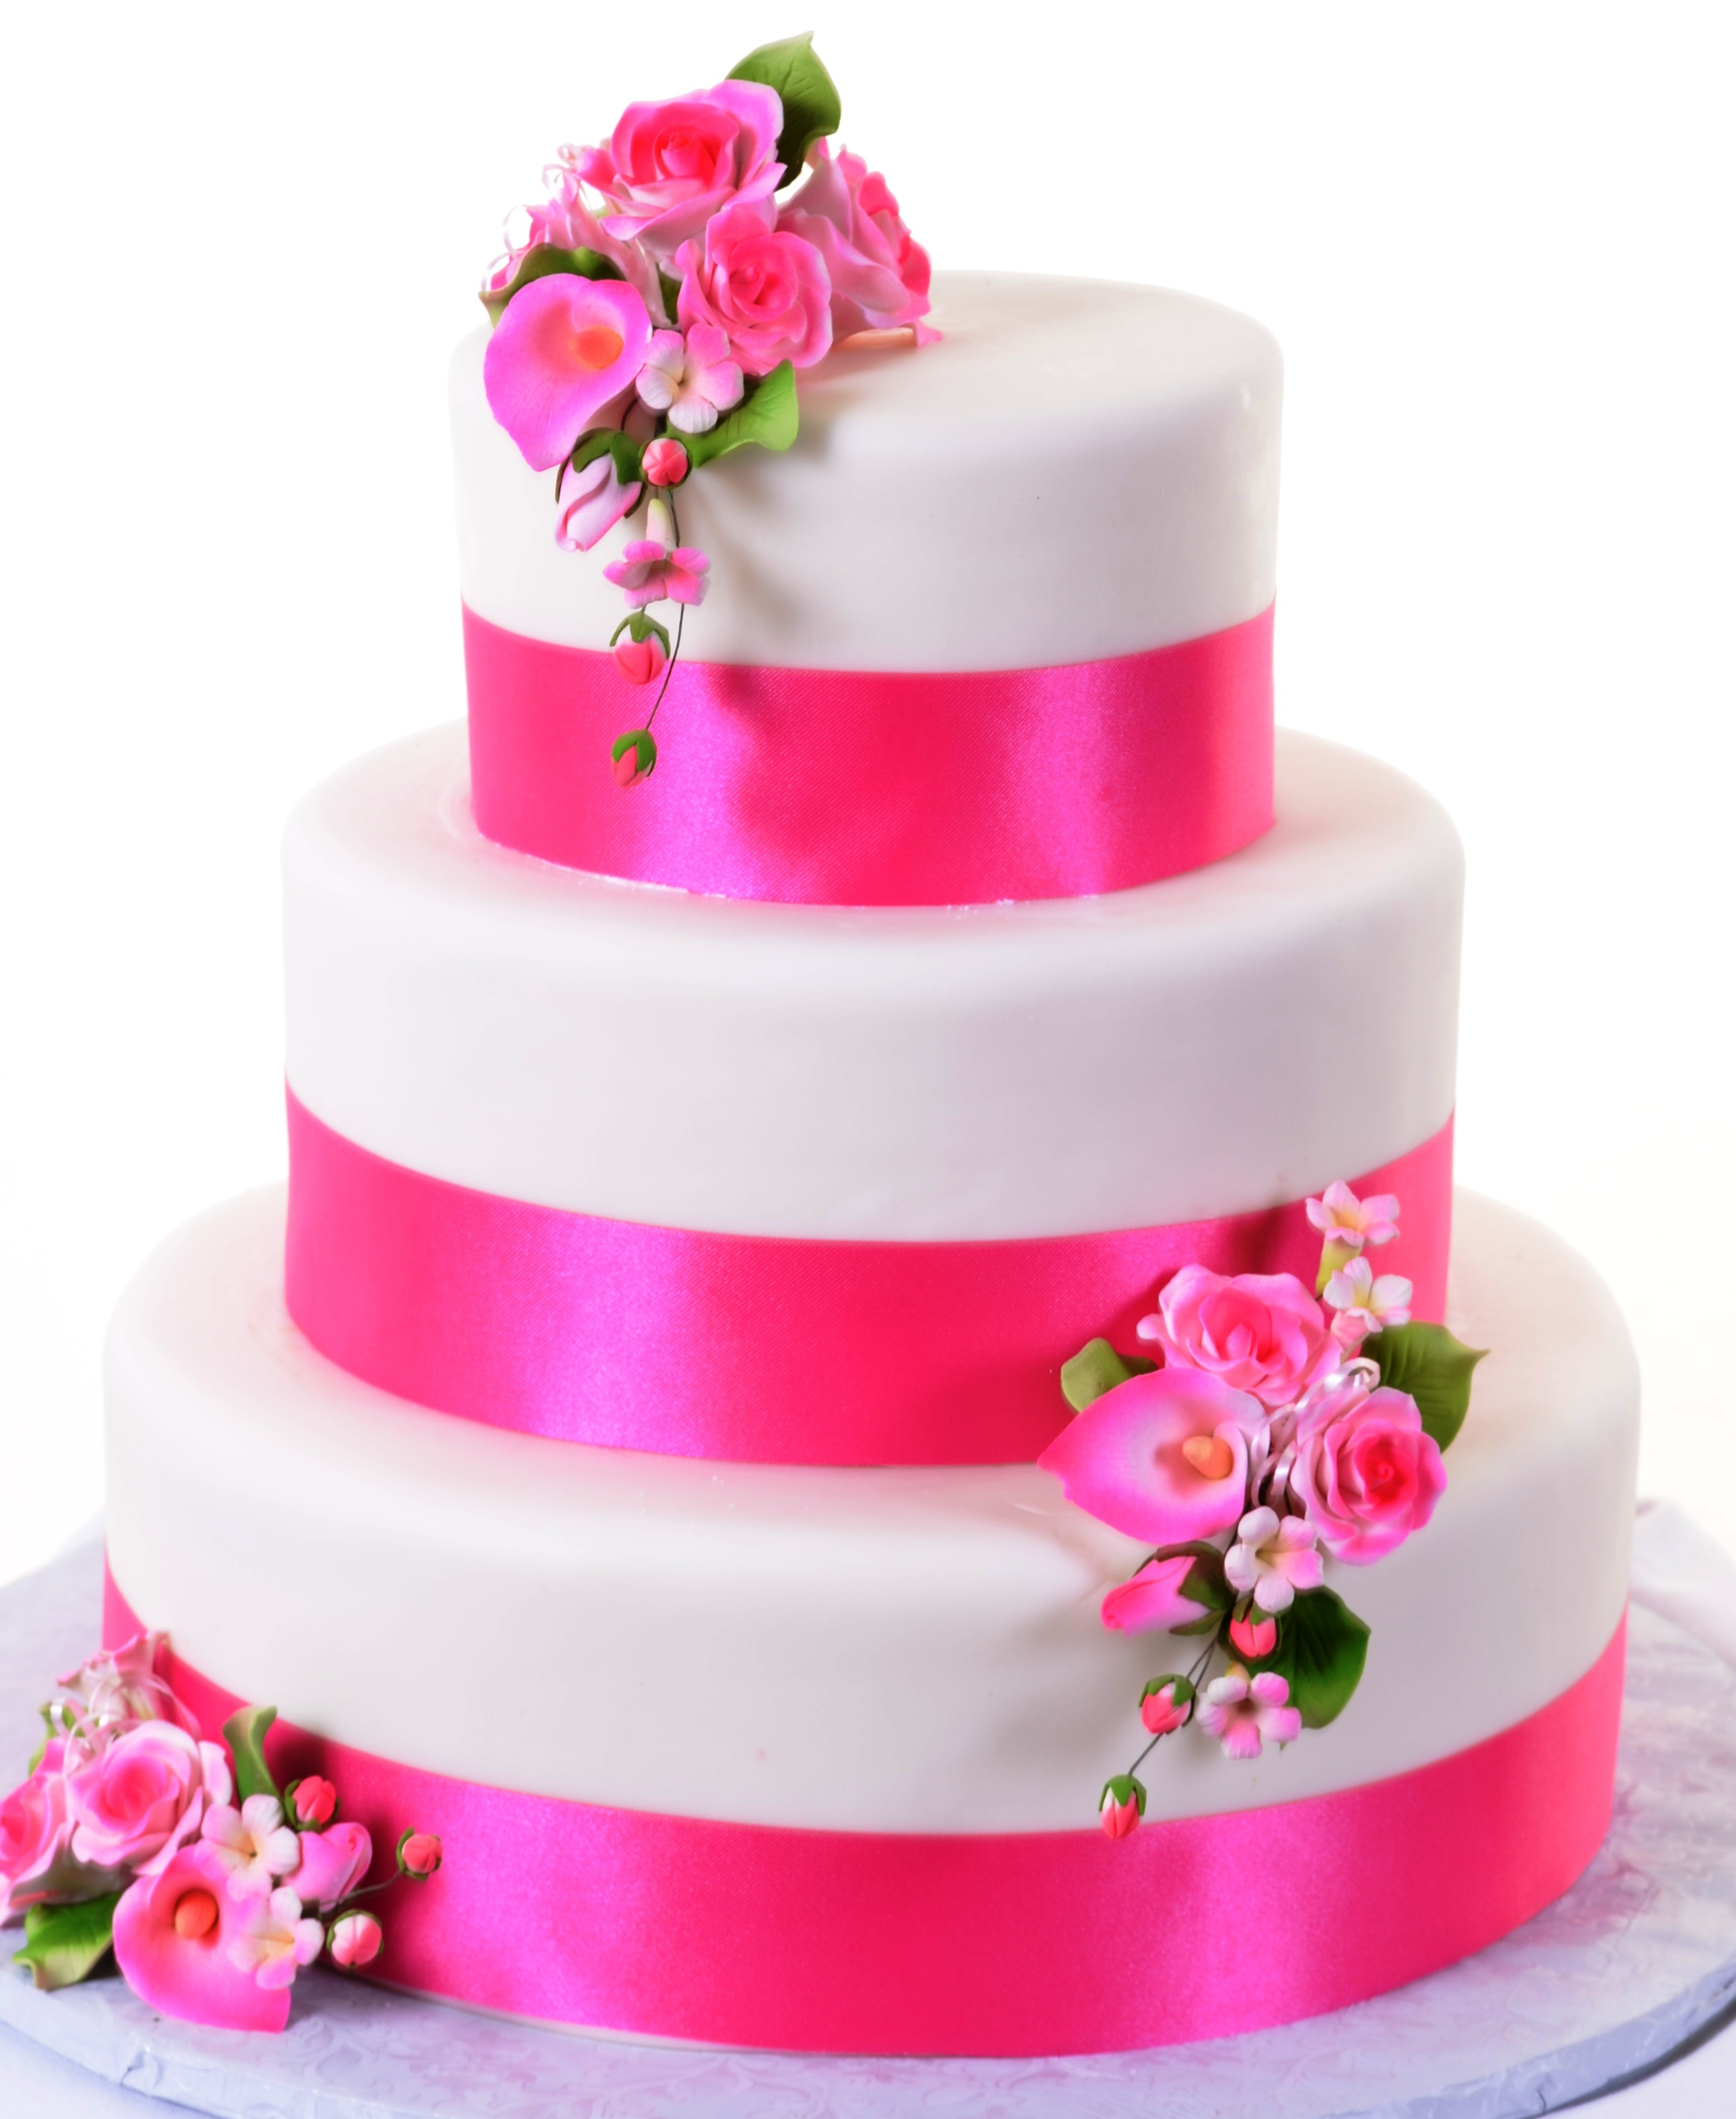 Pink pastry cake photo